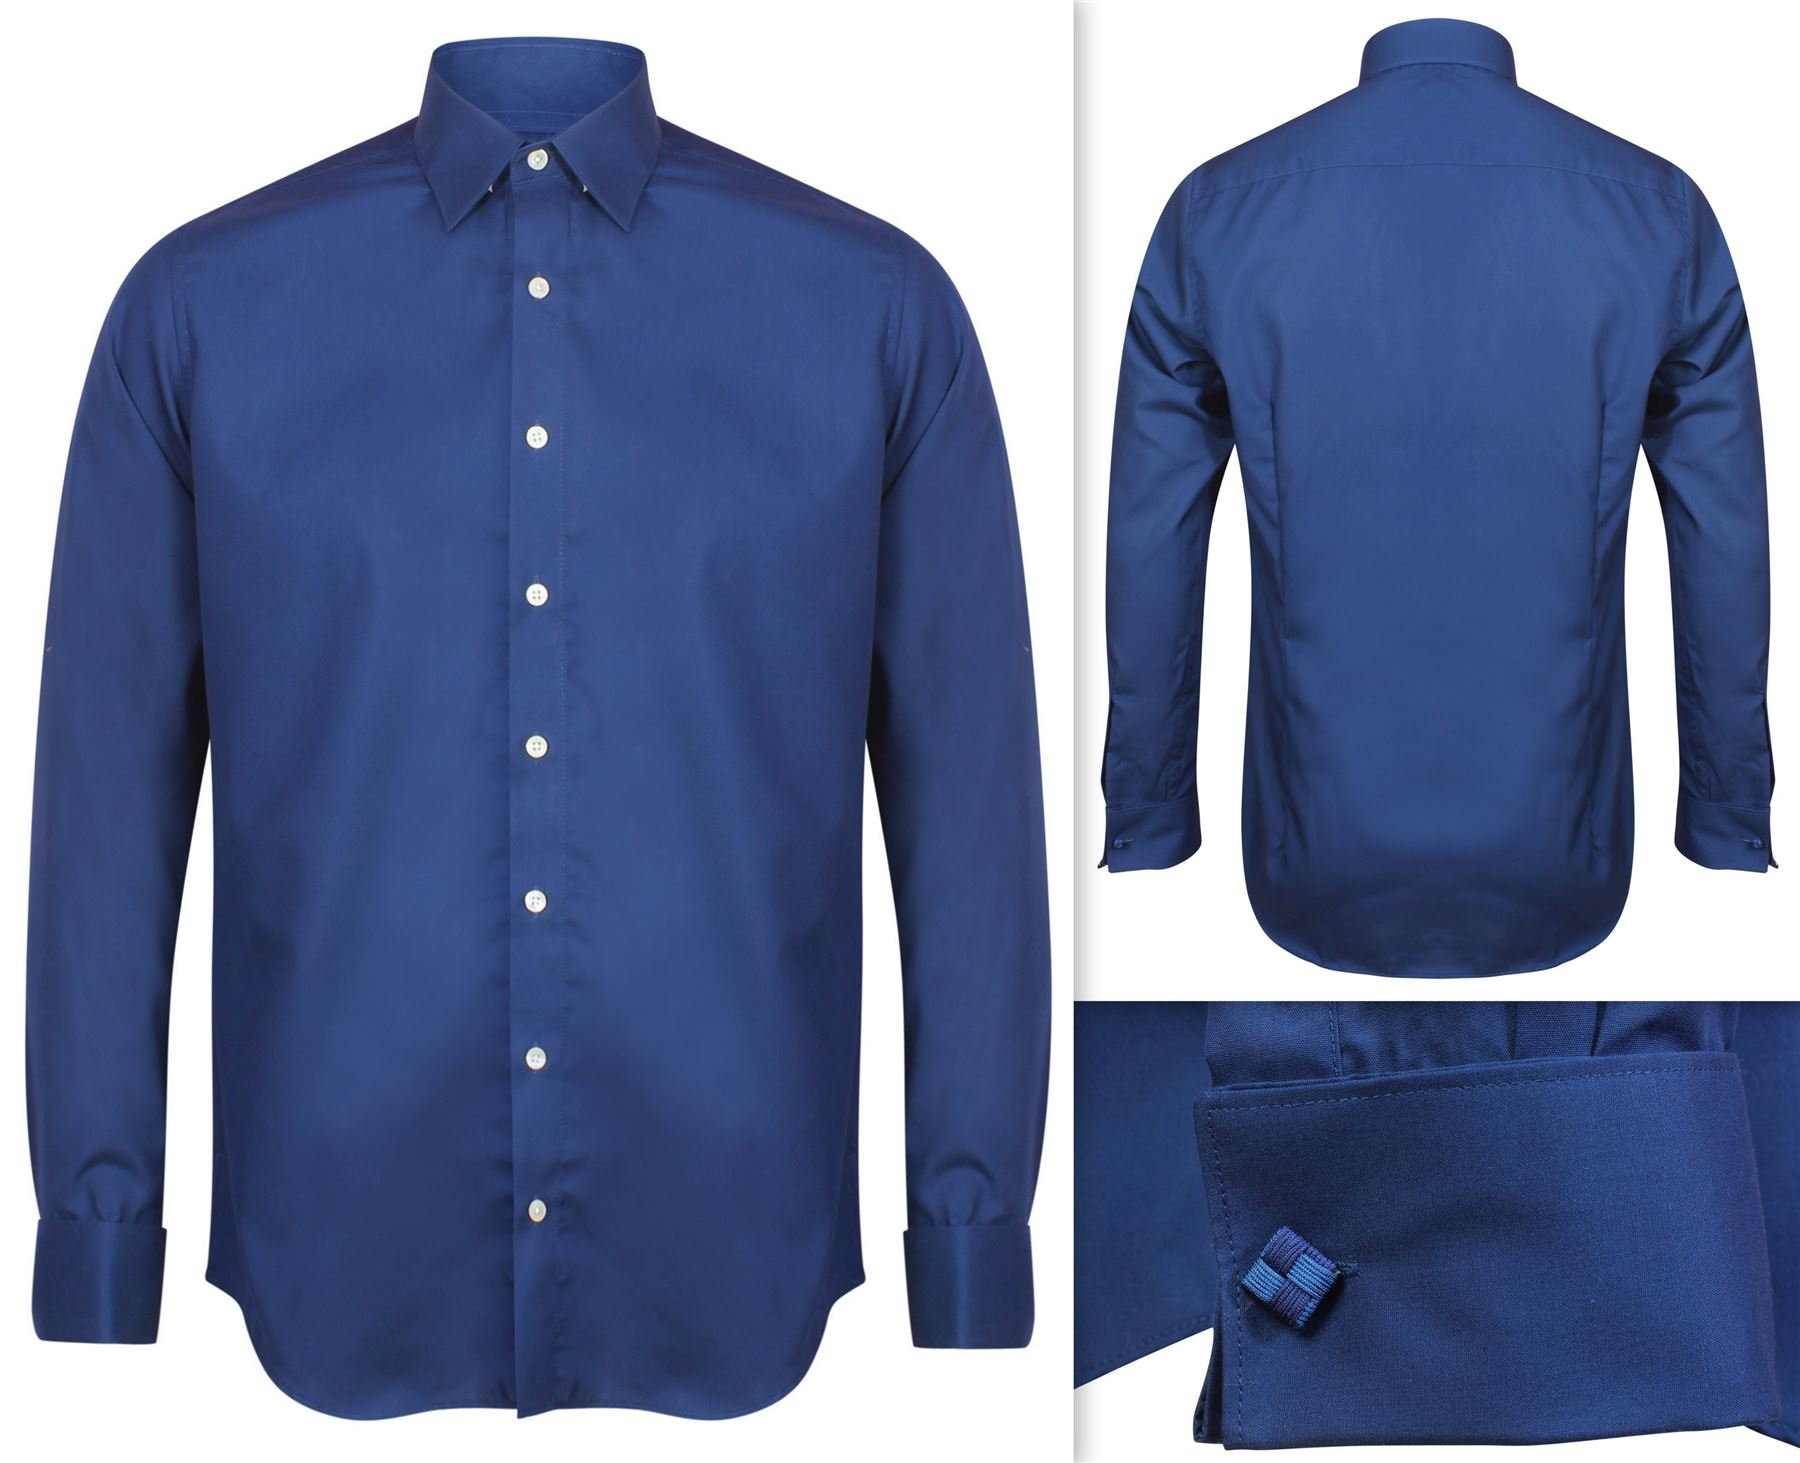 Mens shirt invictus slim athletic body fit easycare cotton for Mens shirt french cuff